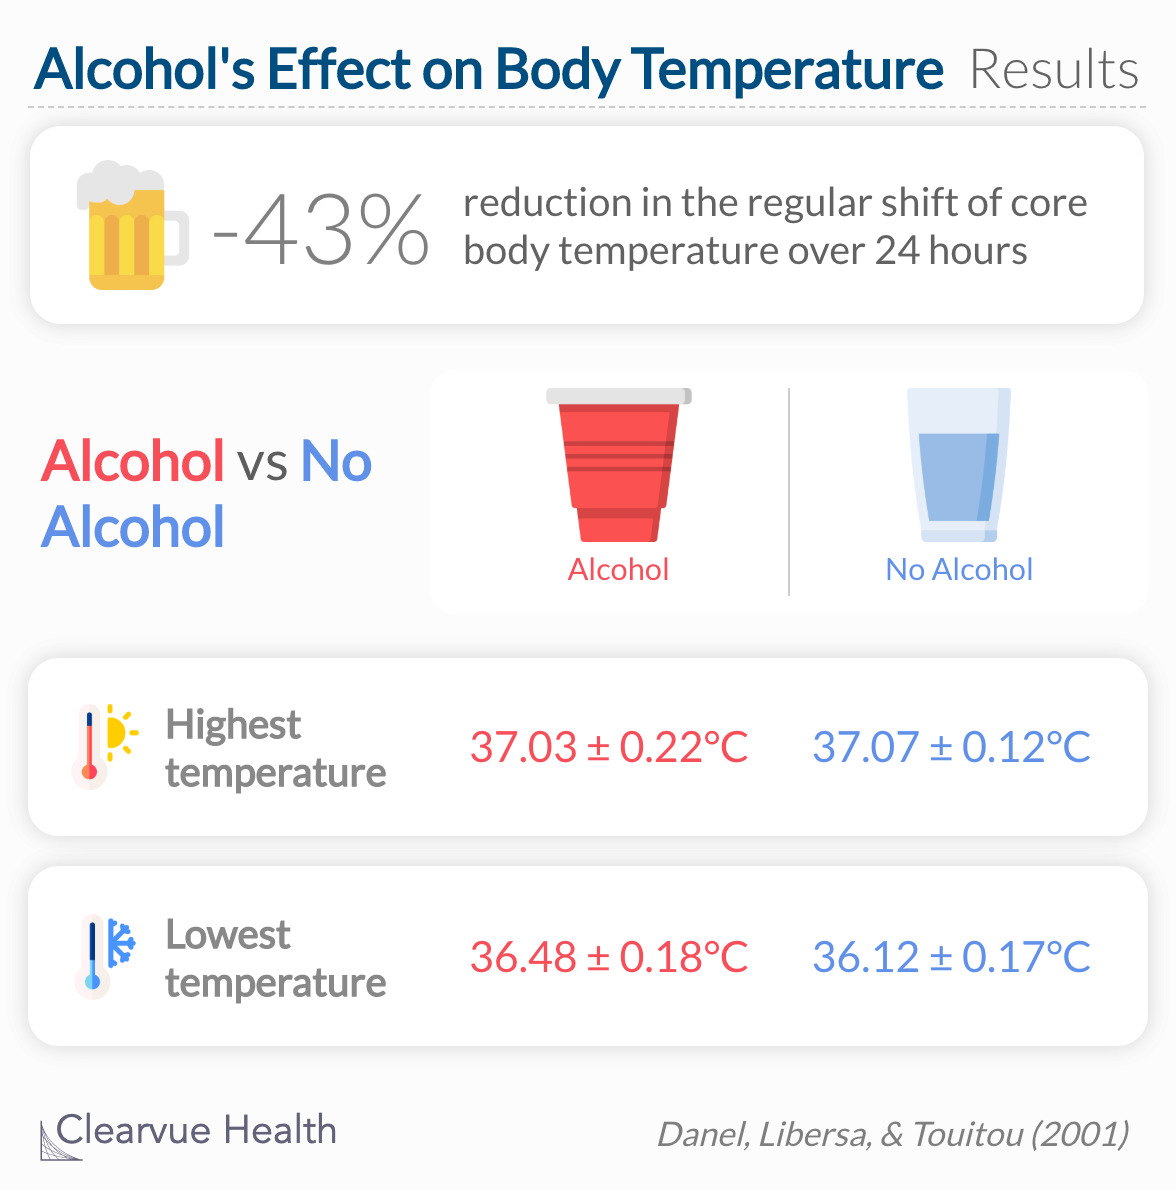 alcohol consumption dramatically affected the circadian core body temperature